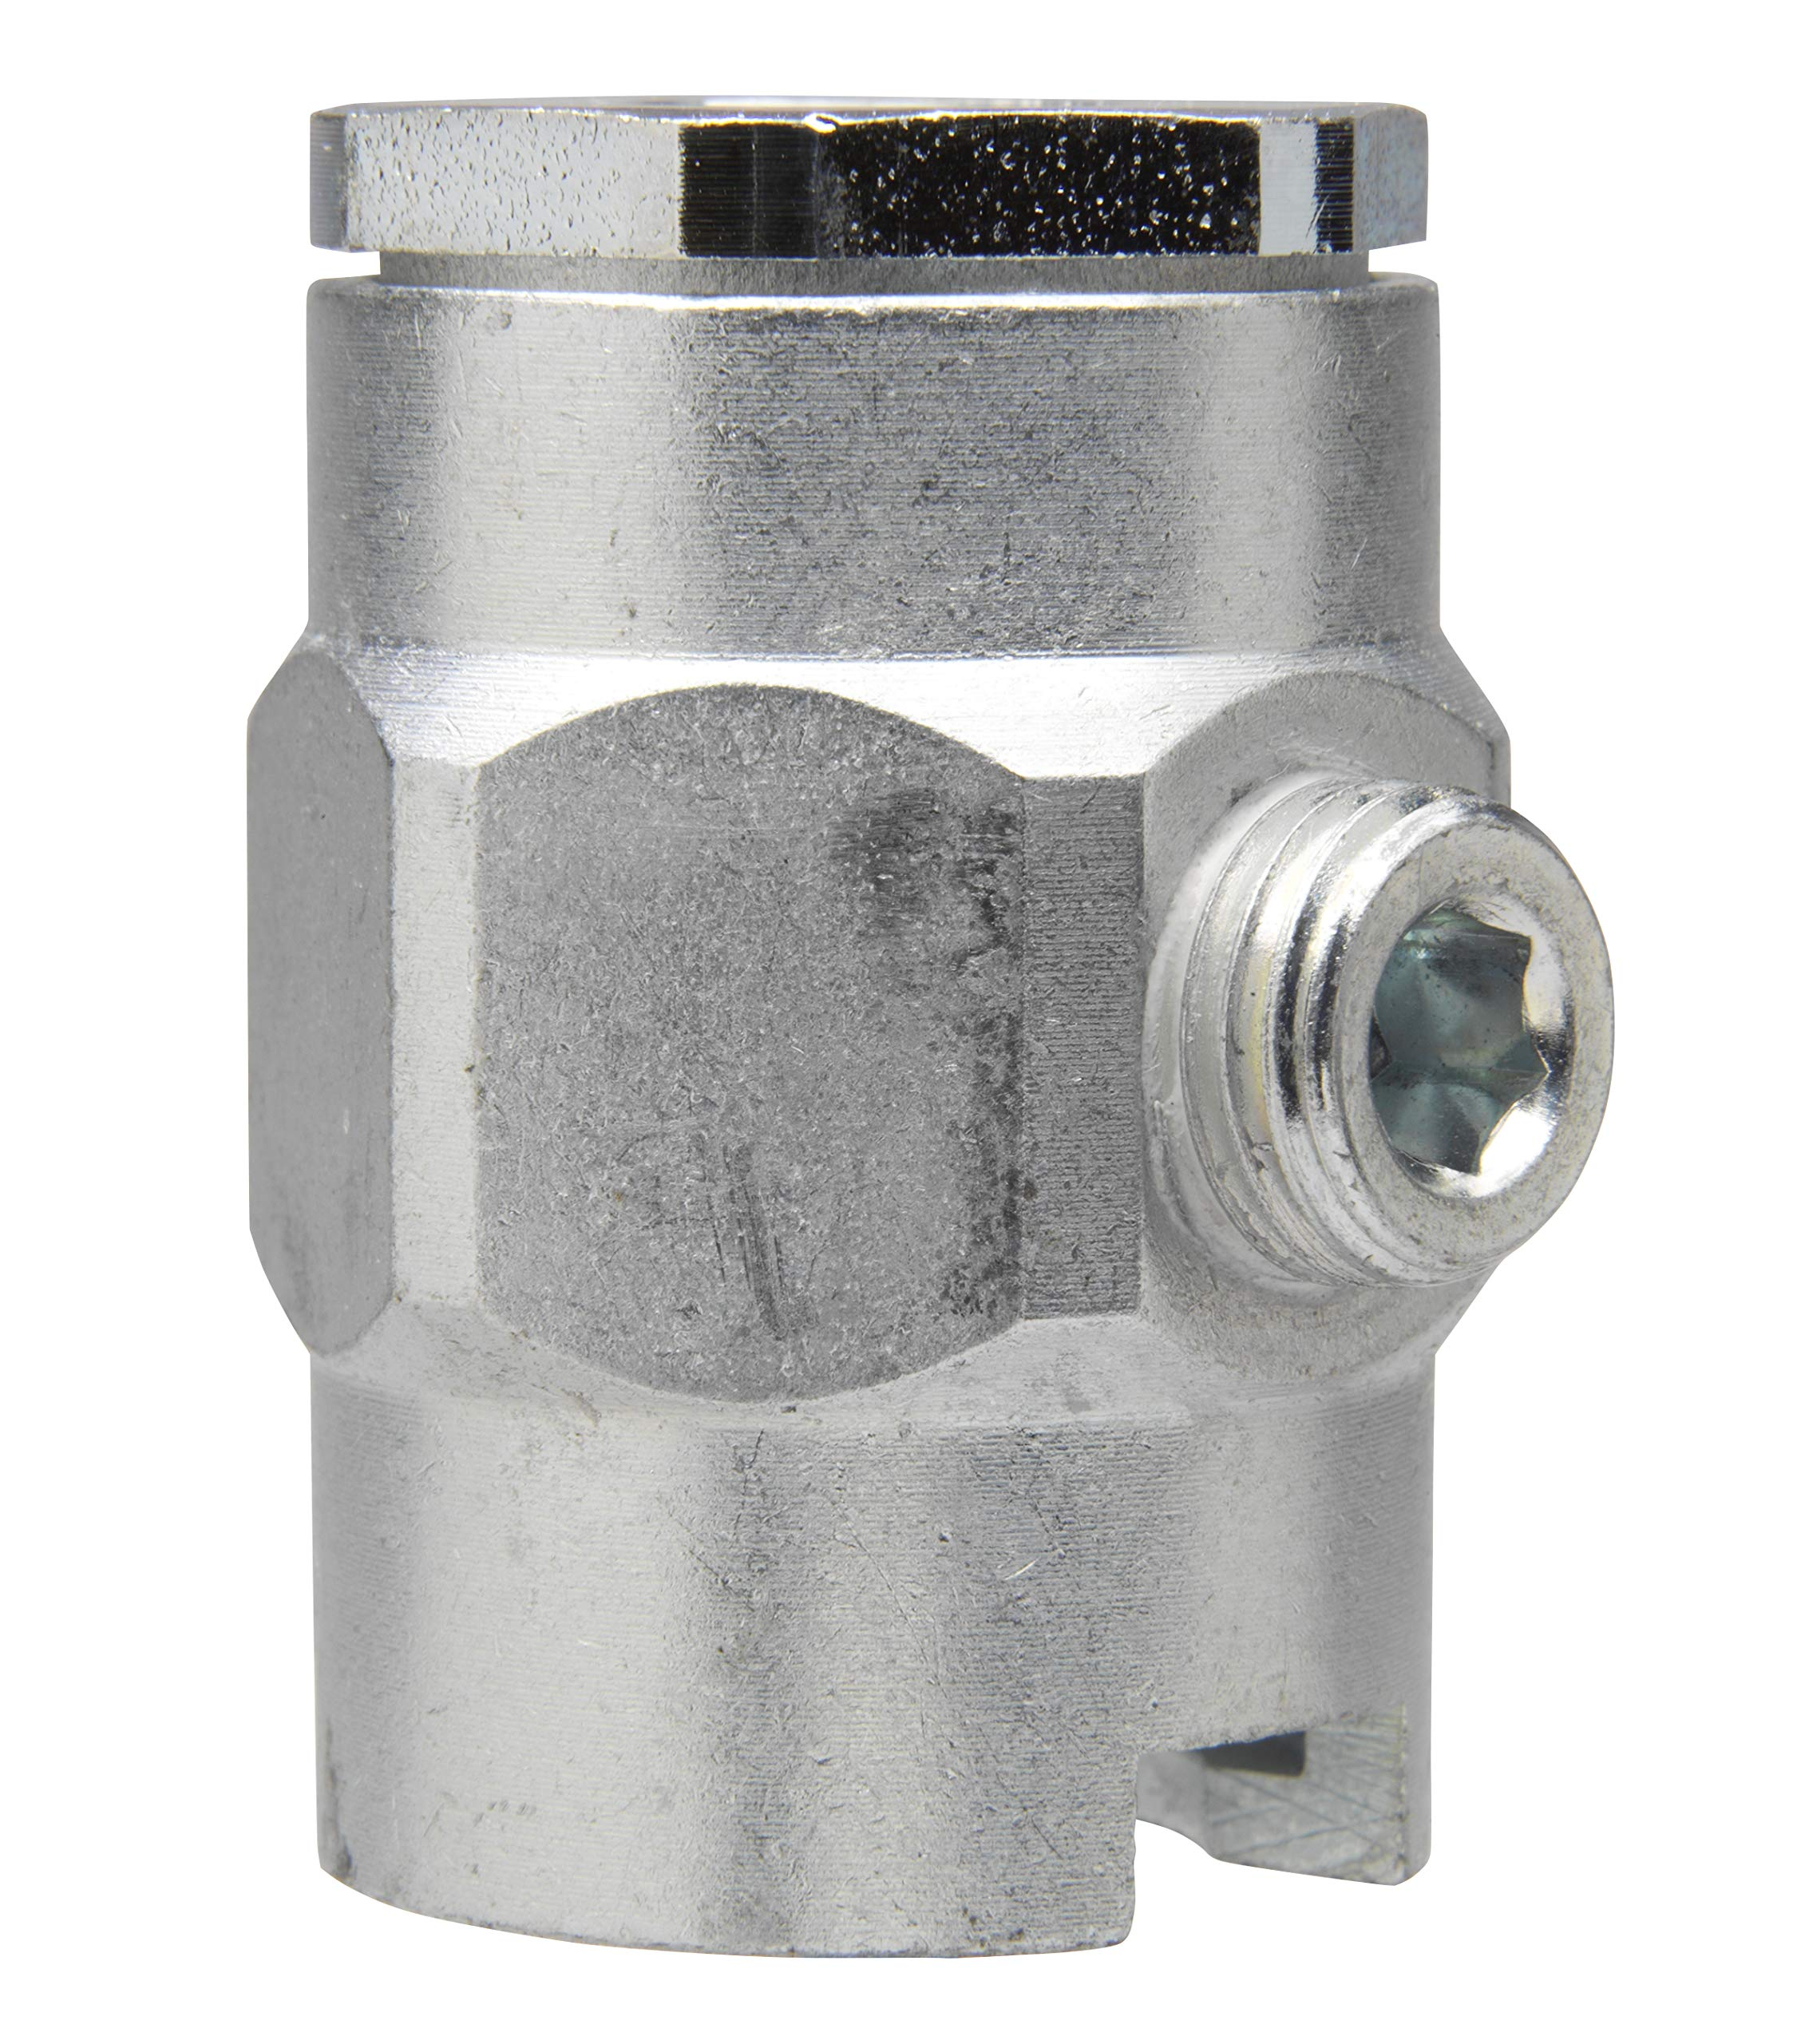 Alemite 319702 Button Head Coupler, Giant Pull-On Type, Use with Standard or Giant Button Head Fittings, 1/4'' Female PTF SAE Short